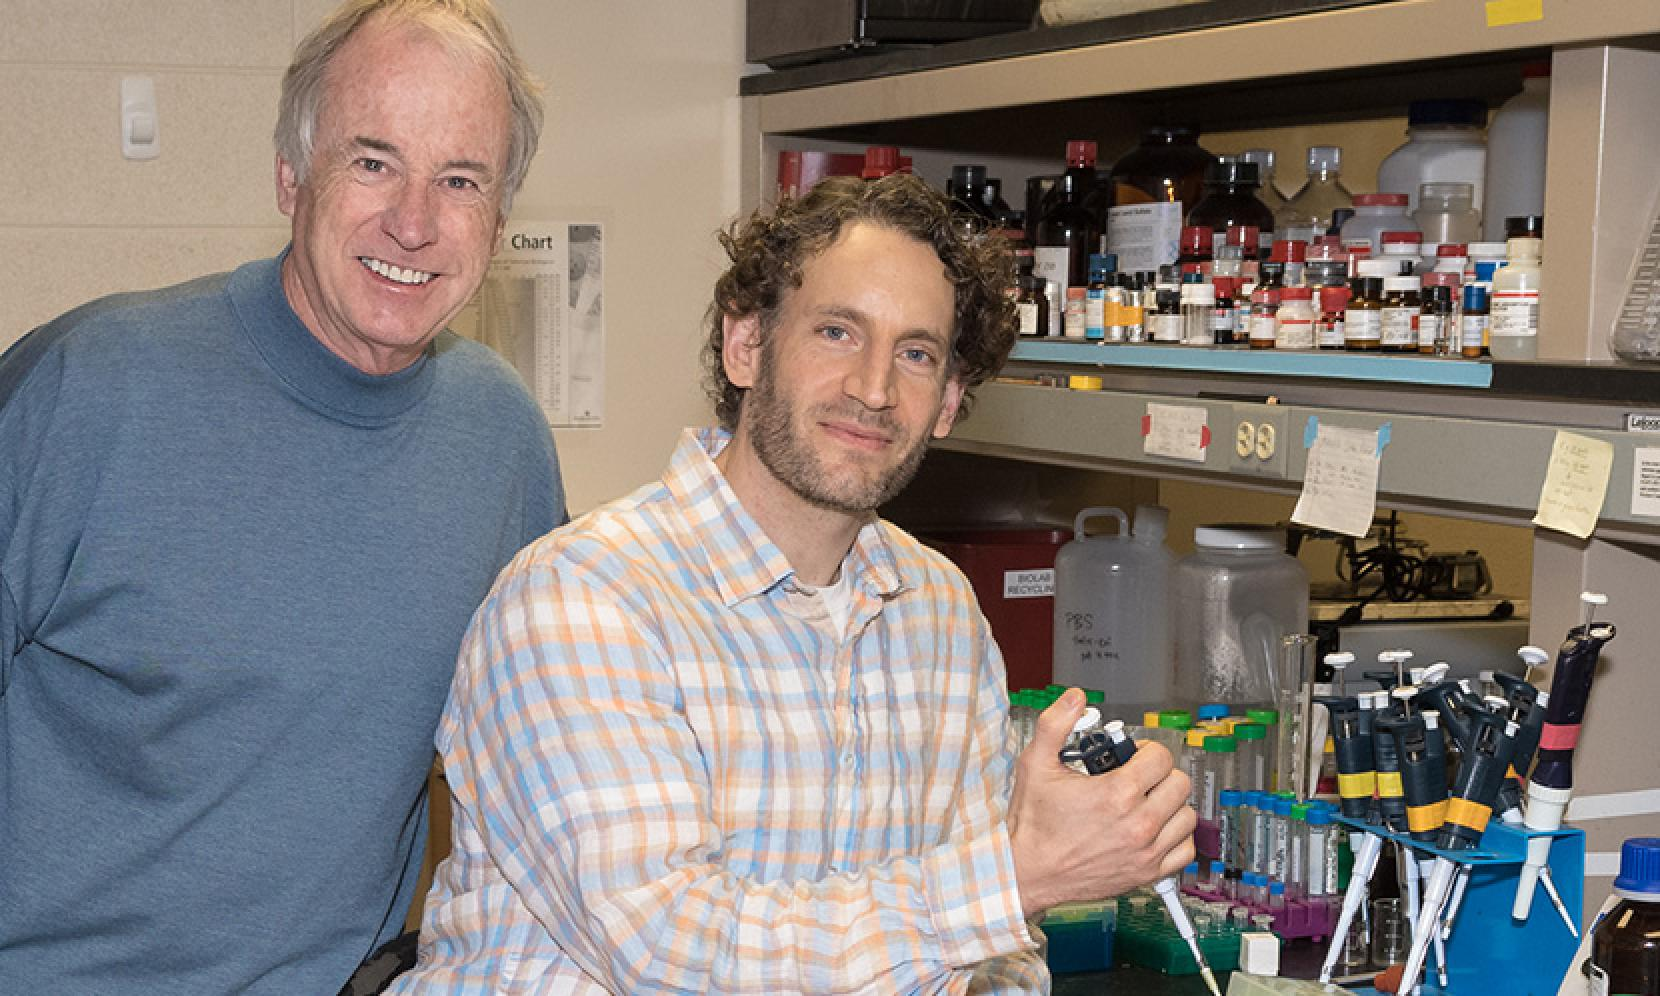 UT scientists Stephen Martin and James Sahn have discovered a new, non-addictive pain reliever compound.  (Photo Courtesy UT Austin).